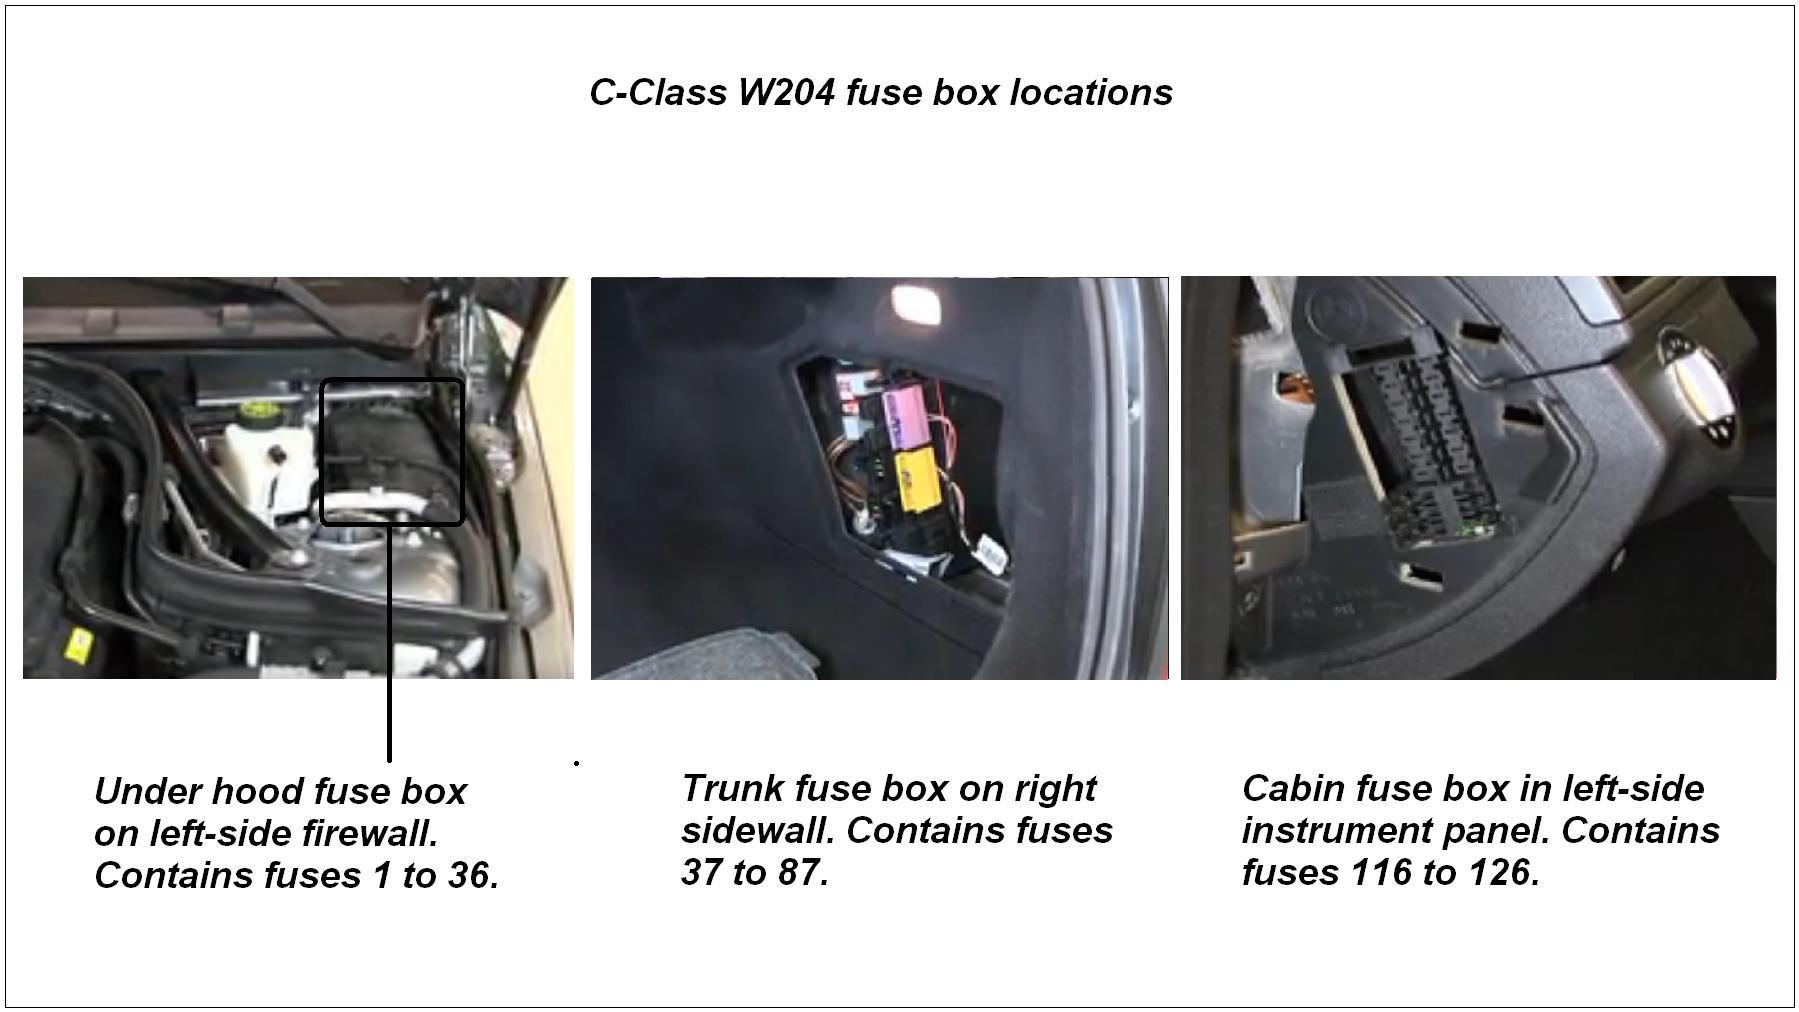 Mercedes Benz C Class W204 Fuse Diagrams And Commonly Blown Fuses Fire Box Location Of Boxes